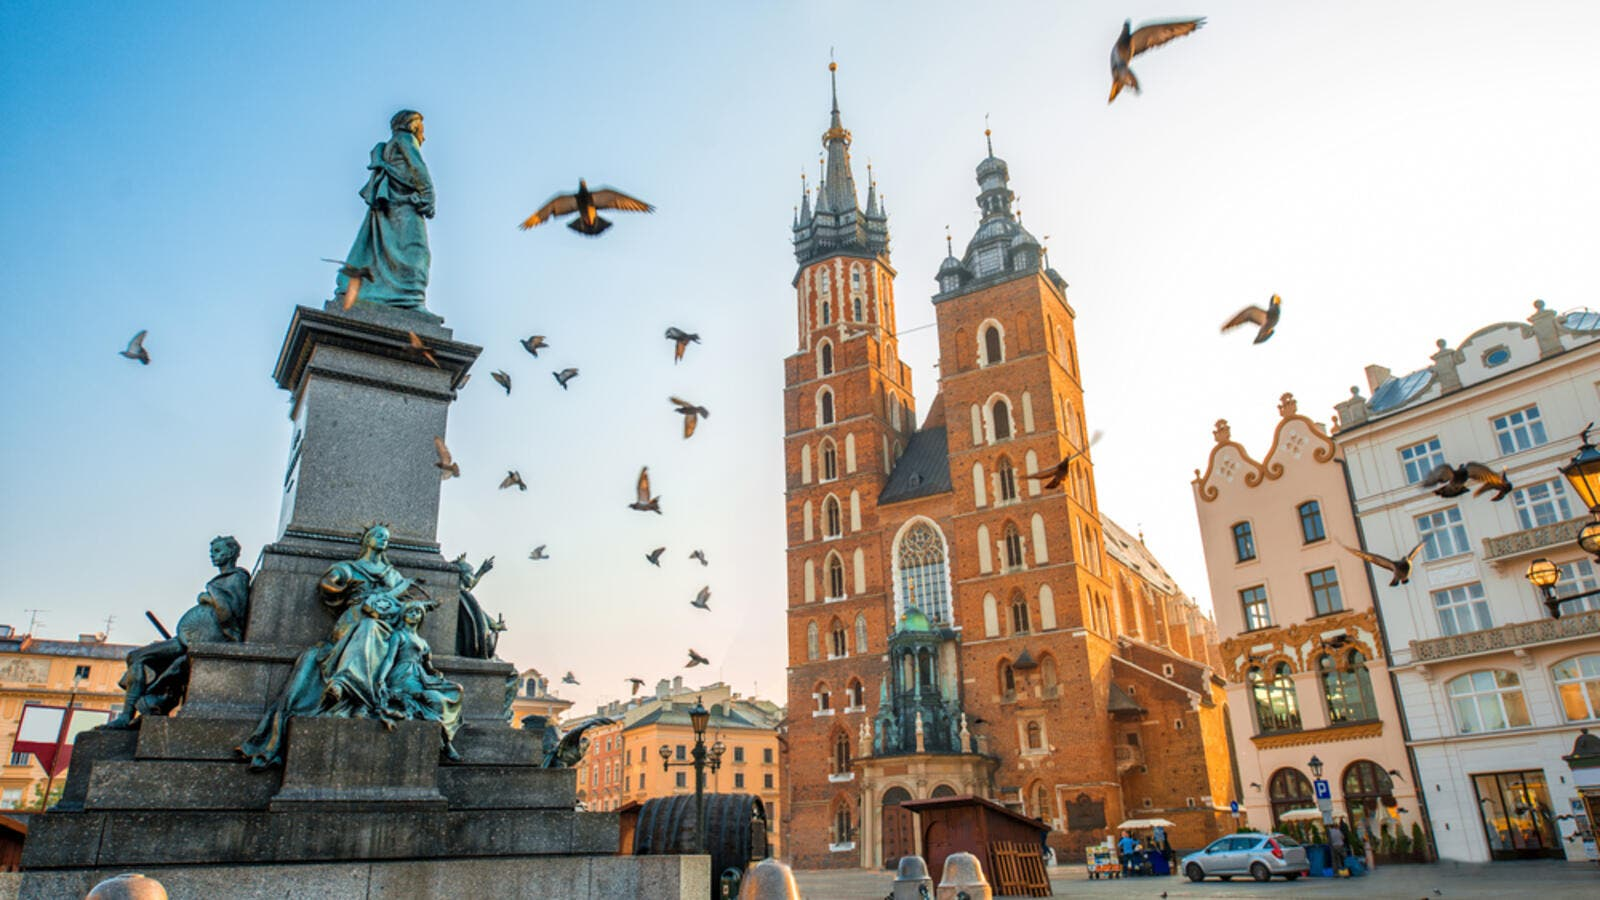 Old city center view with Adam Mickiewicz monument, St. Mary's Basilica and birds flying in Krakow (Shutterstock)